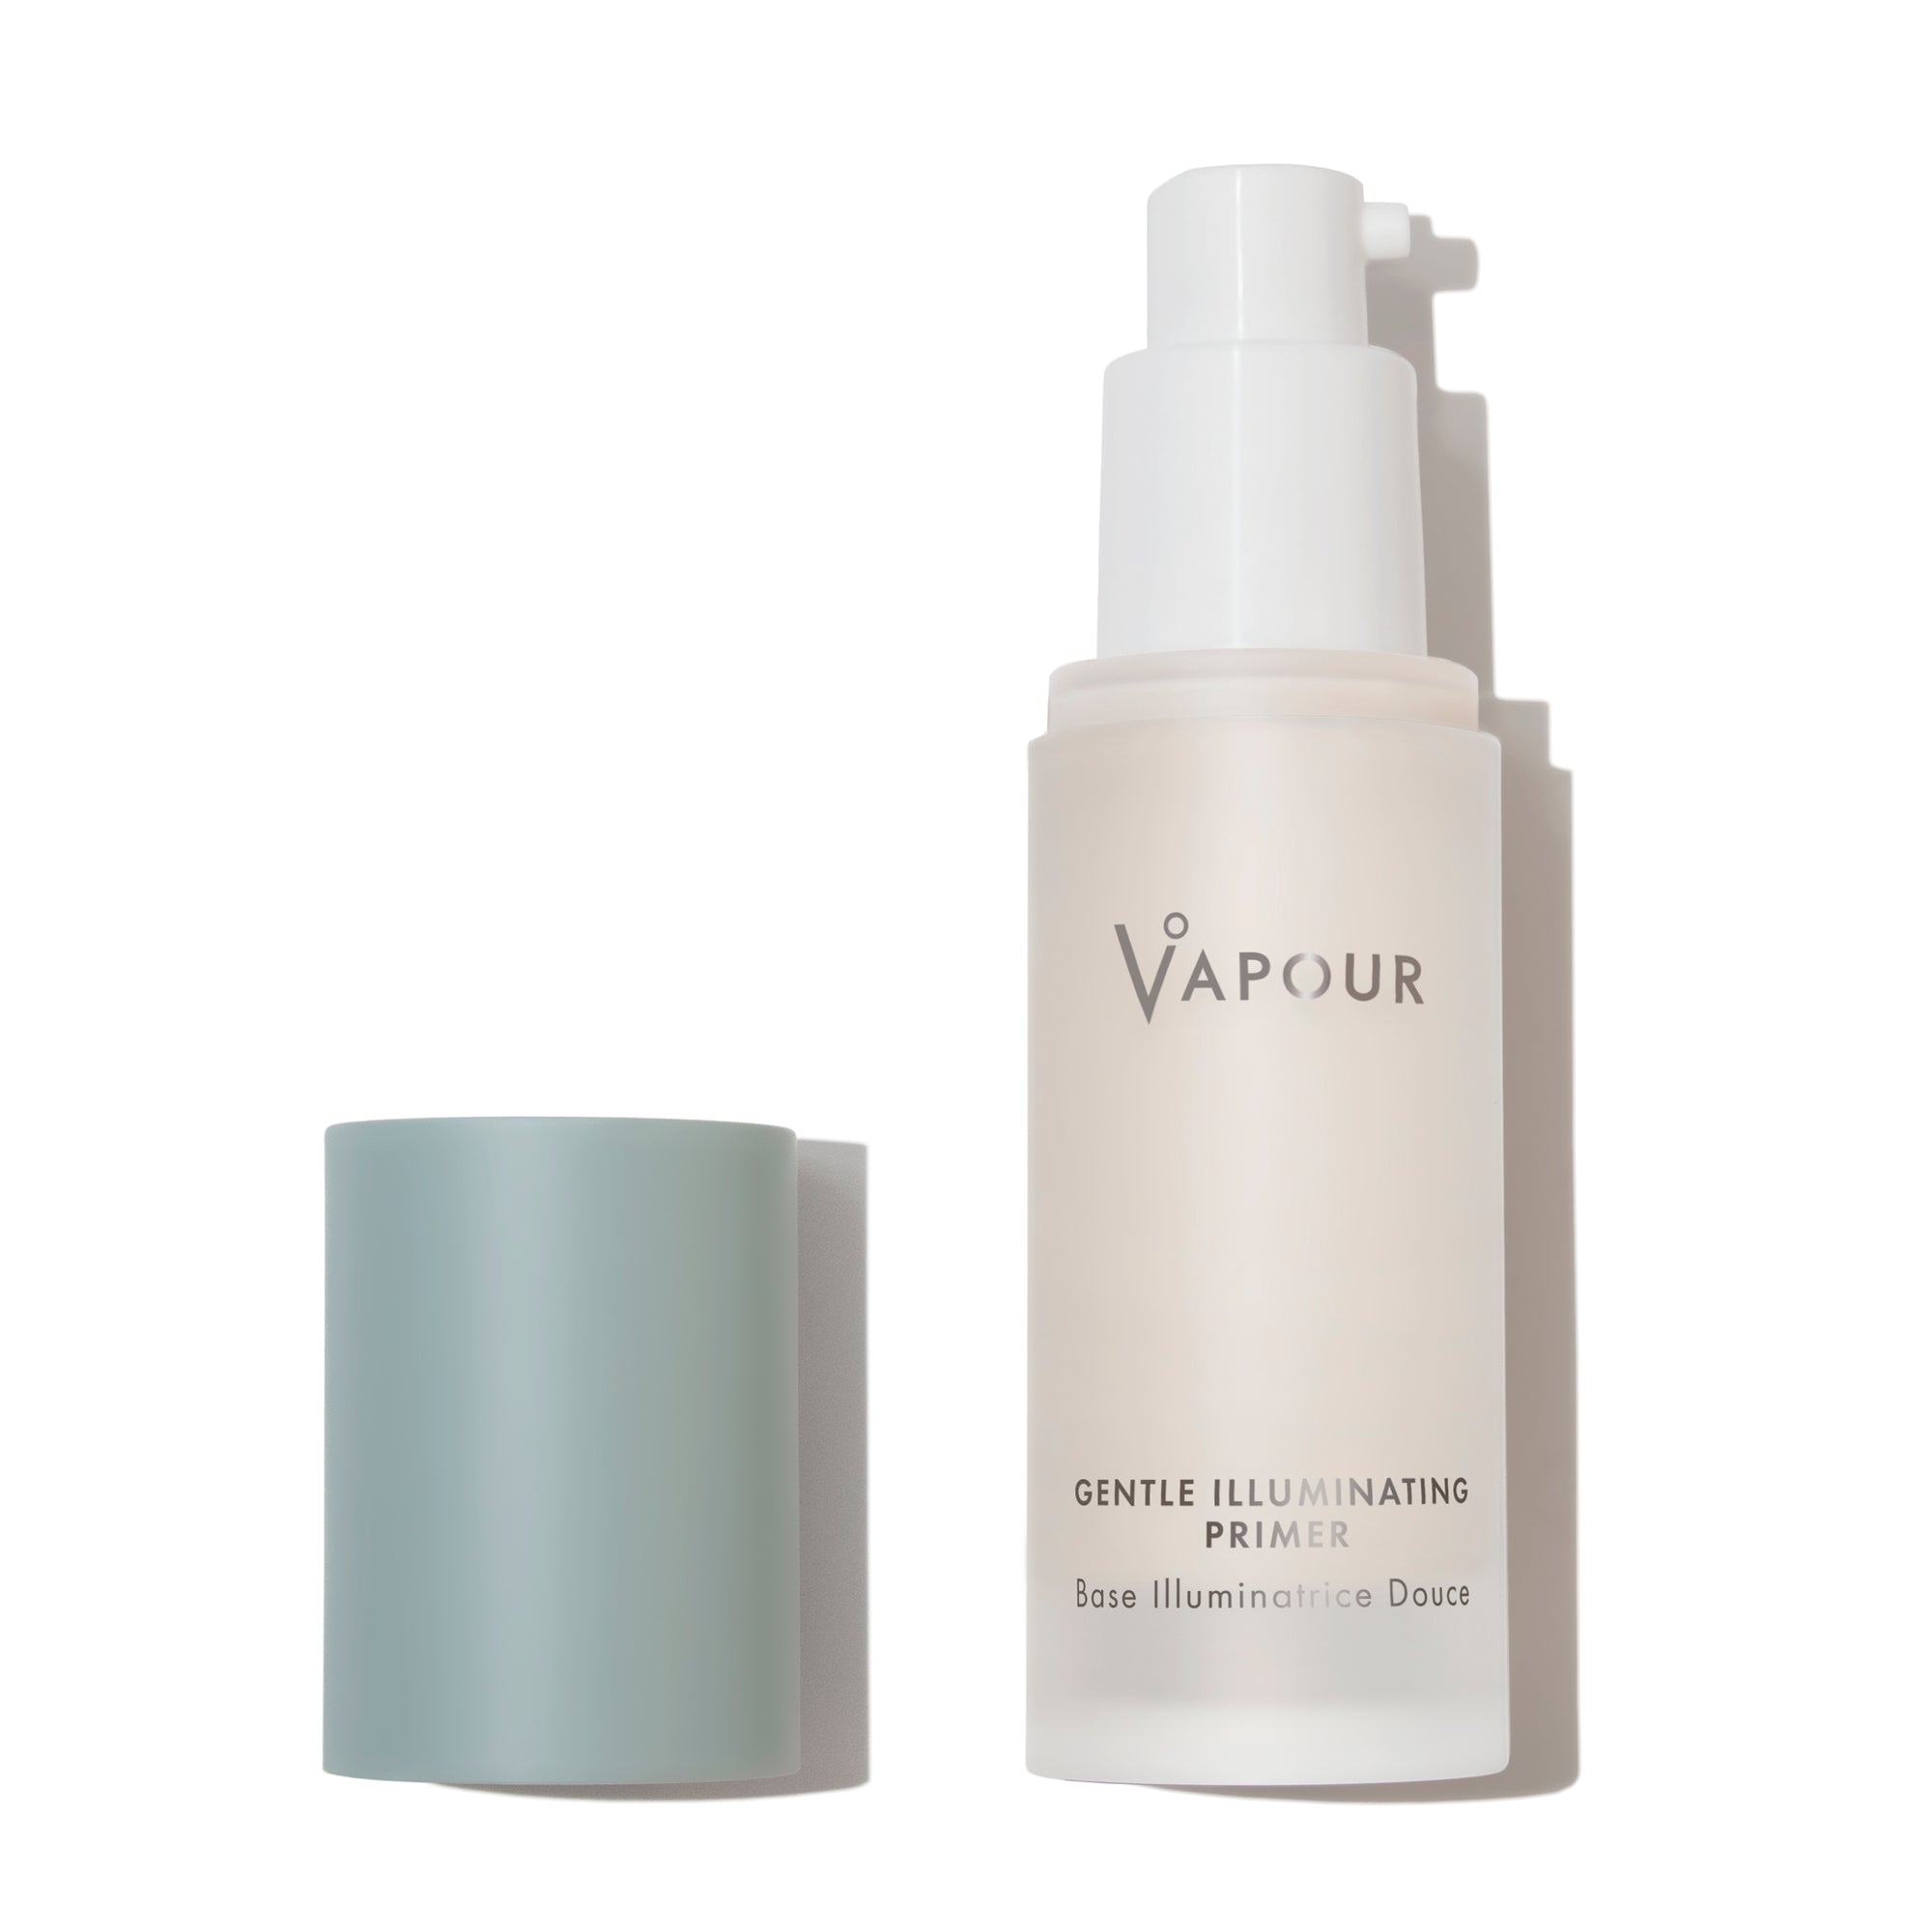 Vapour Gentle Illuminating Primer